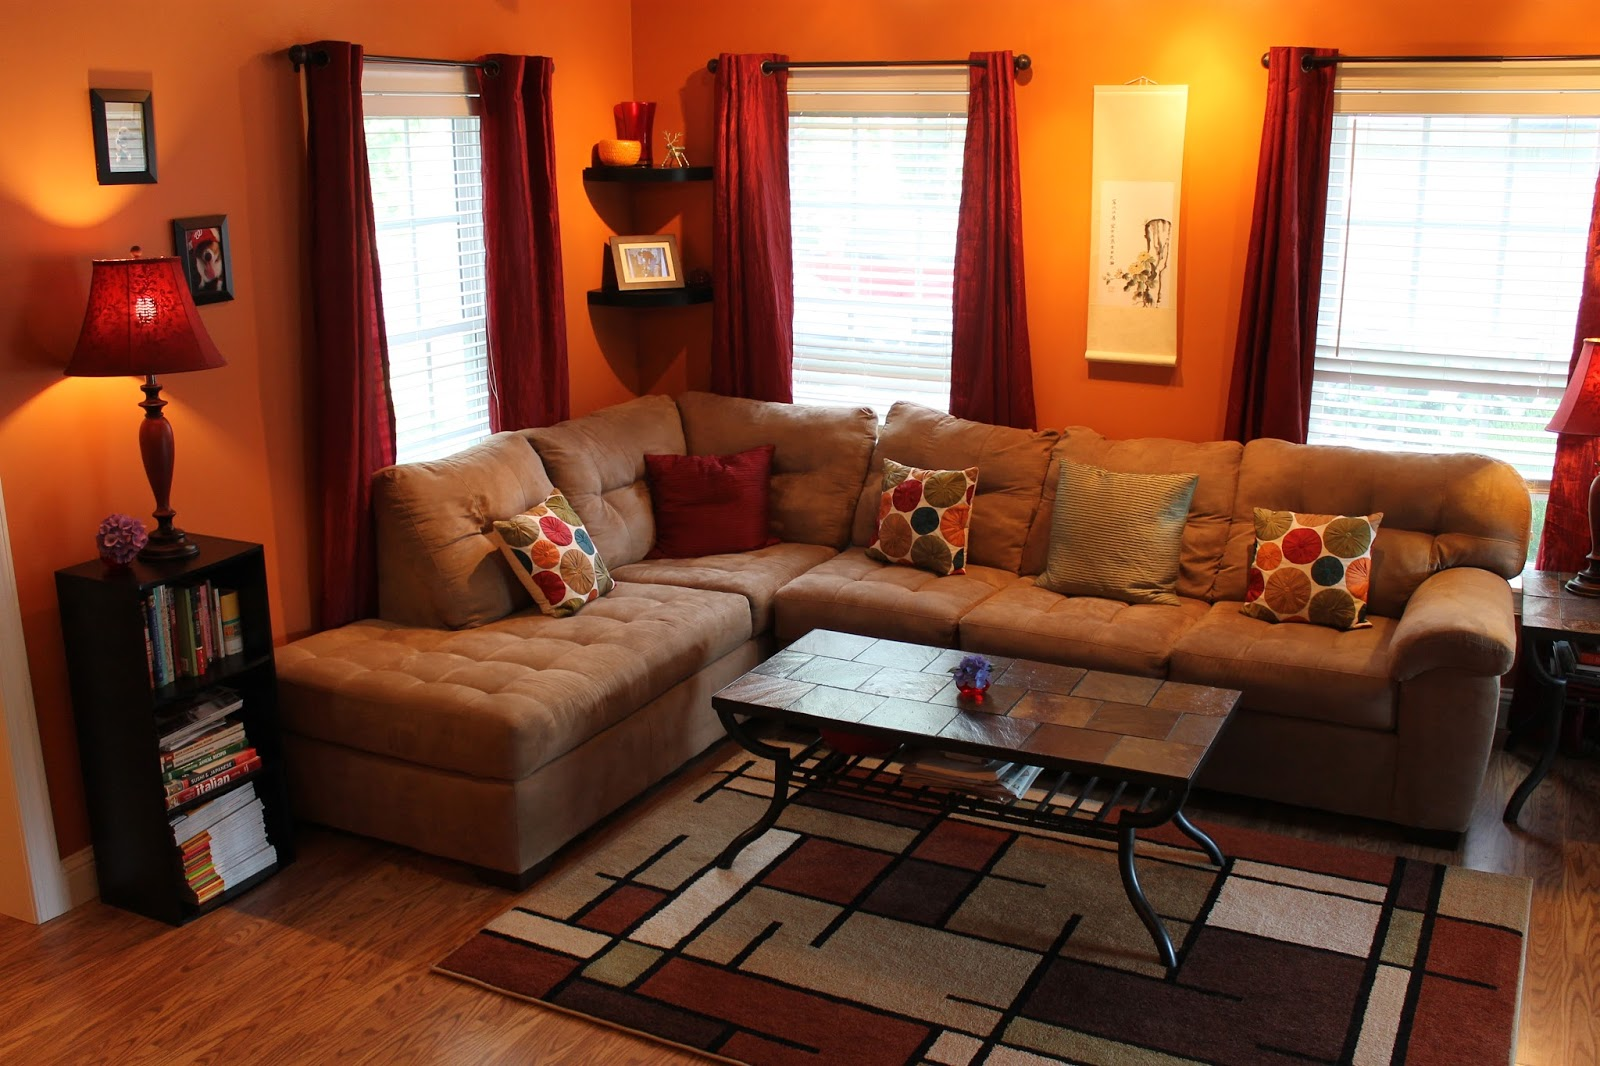 what color curtains go with orange walls | blankets & throws ideas